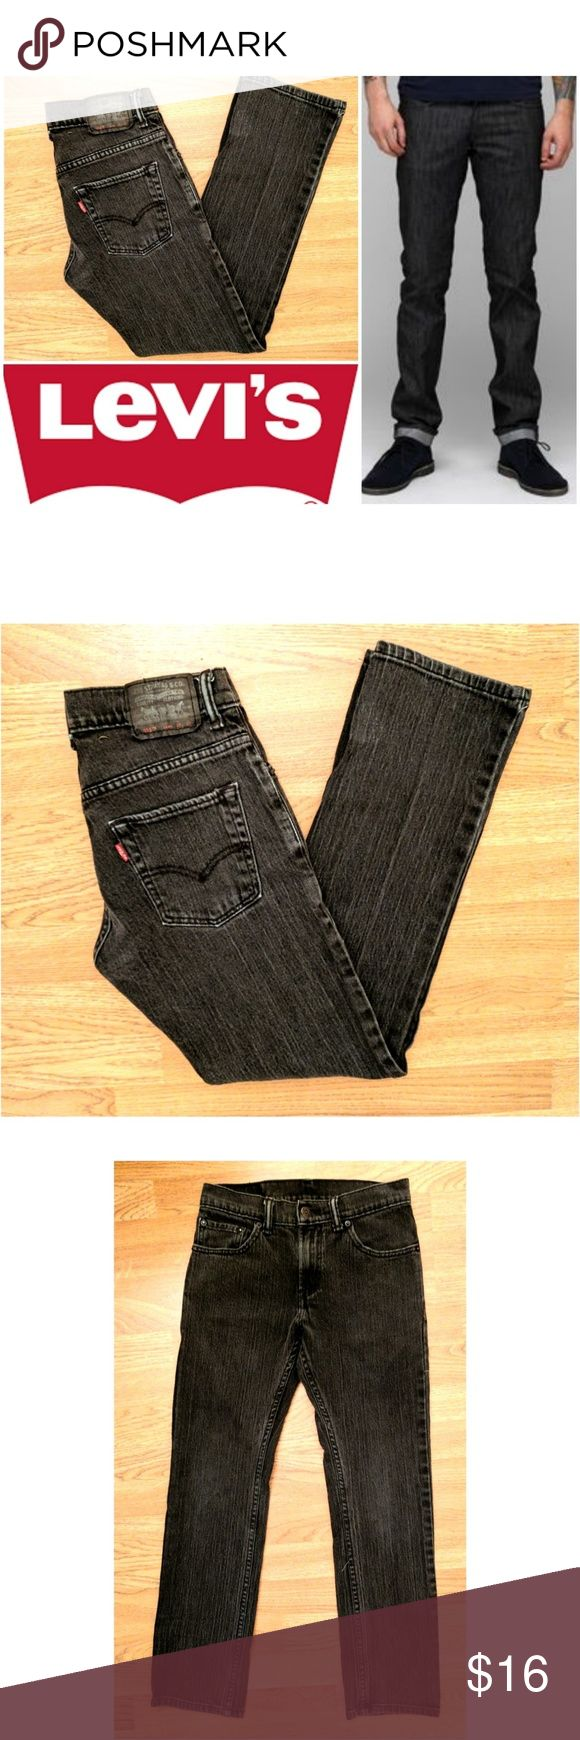 "511 Skinny Levi's Charcoal  jeans These classic Levi's 511 skinny jeans are perfect for any occasion! Charcoal dark gray/soft black cotton denim wash with 1% spandex for stretch fit. Traditional 5 pocket style leather logo tag on back, red Levi's tag on back pocket. Size 14 regular, 27"" waist and 27"" inseam, model shows fit only. Dress up or down with boots and sweaters, sneakers and tees... Possibilities are endless! In EXCELLENT condition NO DAMAGES. Grab yours for less and look stylish in…"